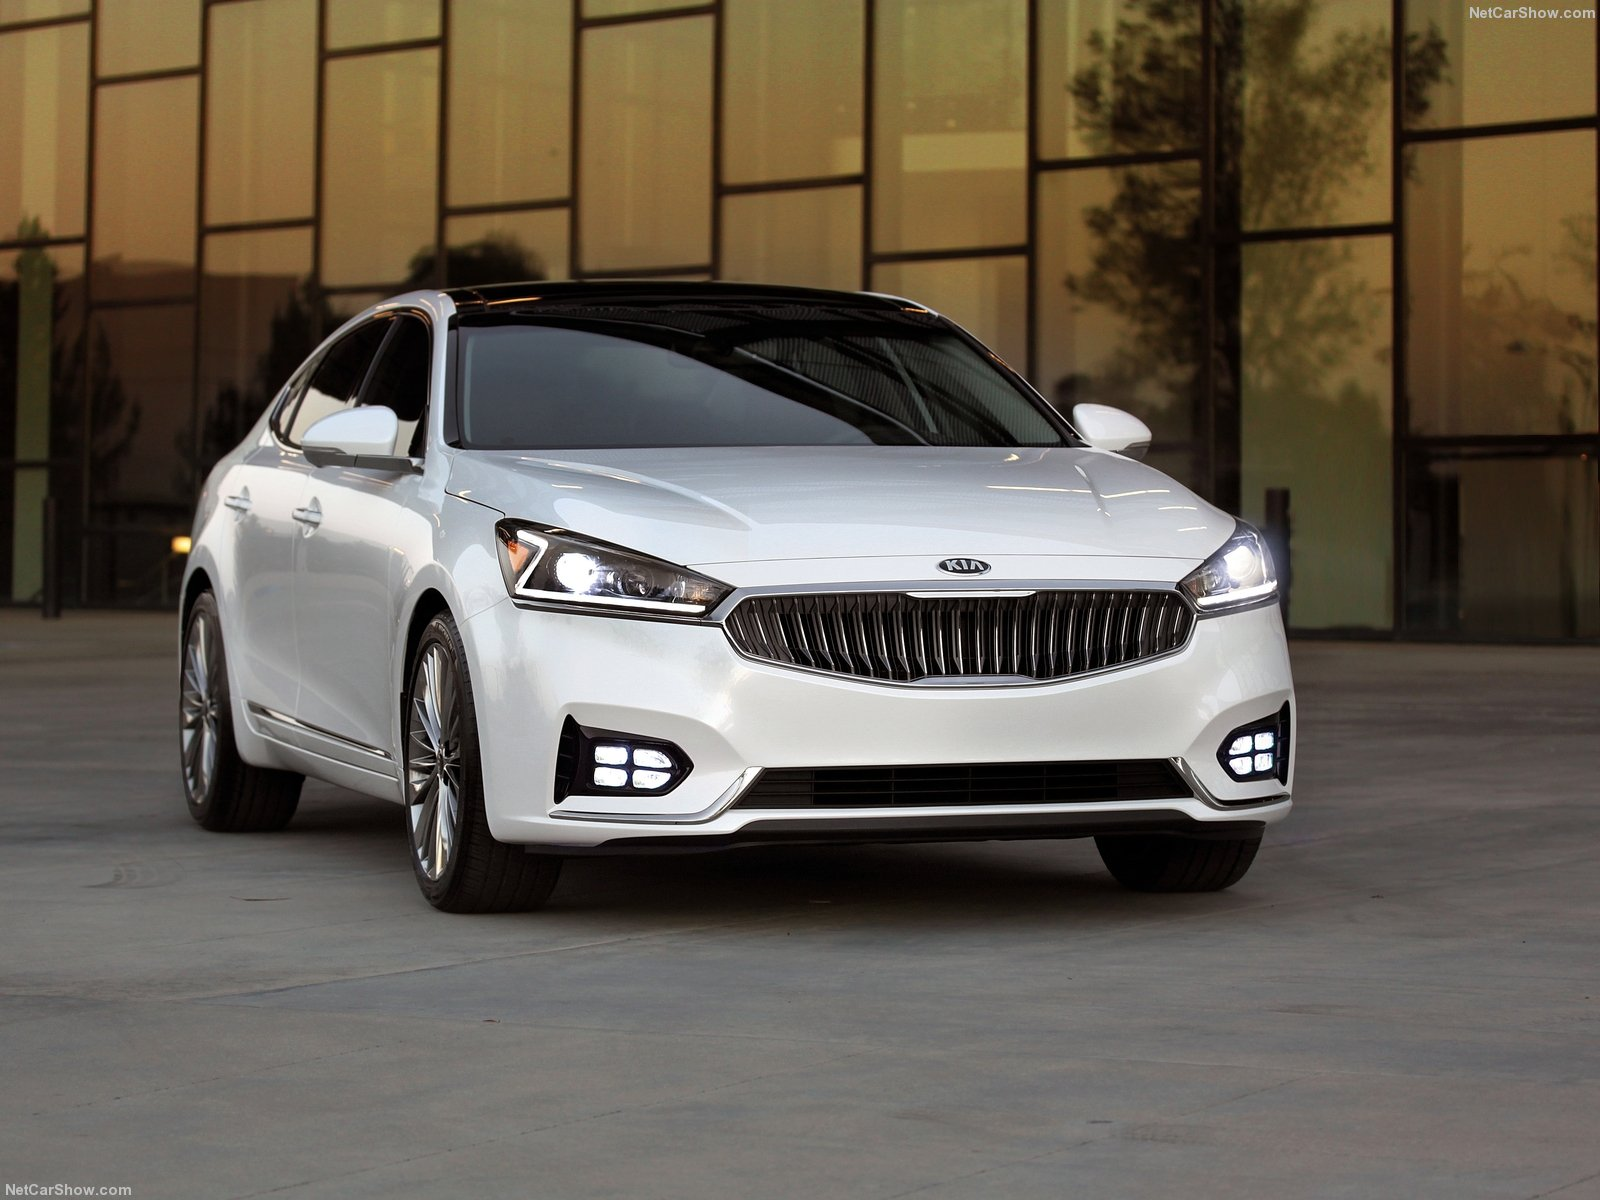 Kia Cadenza photo 181765